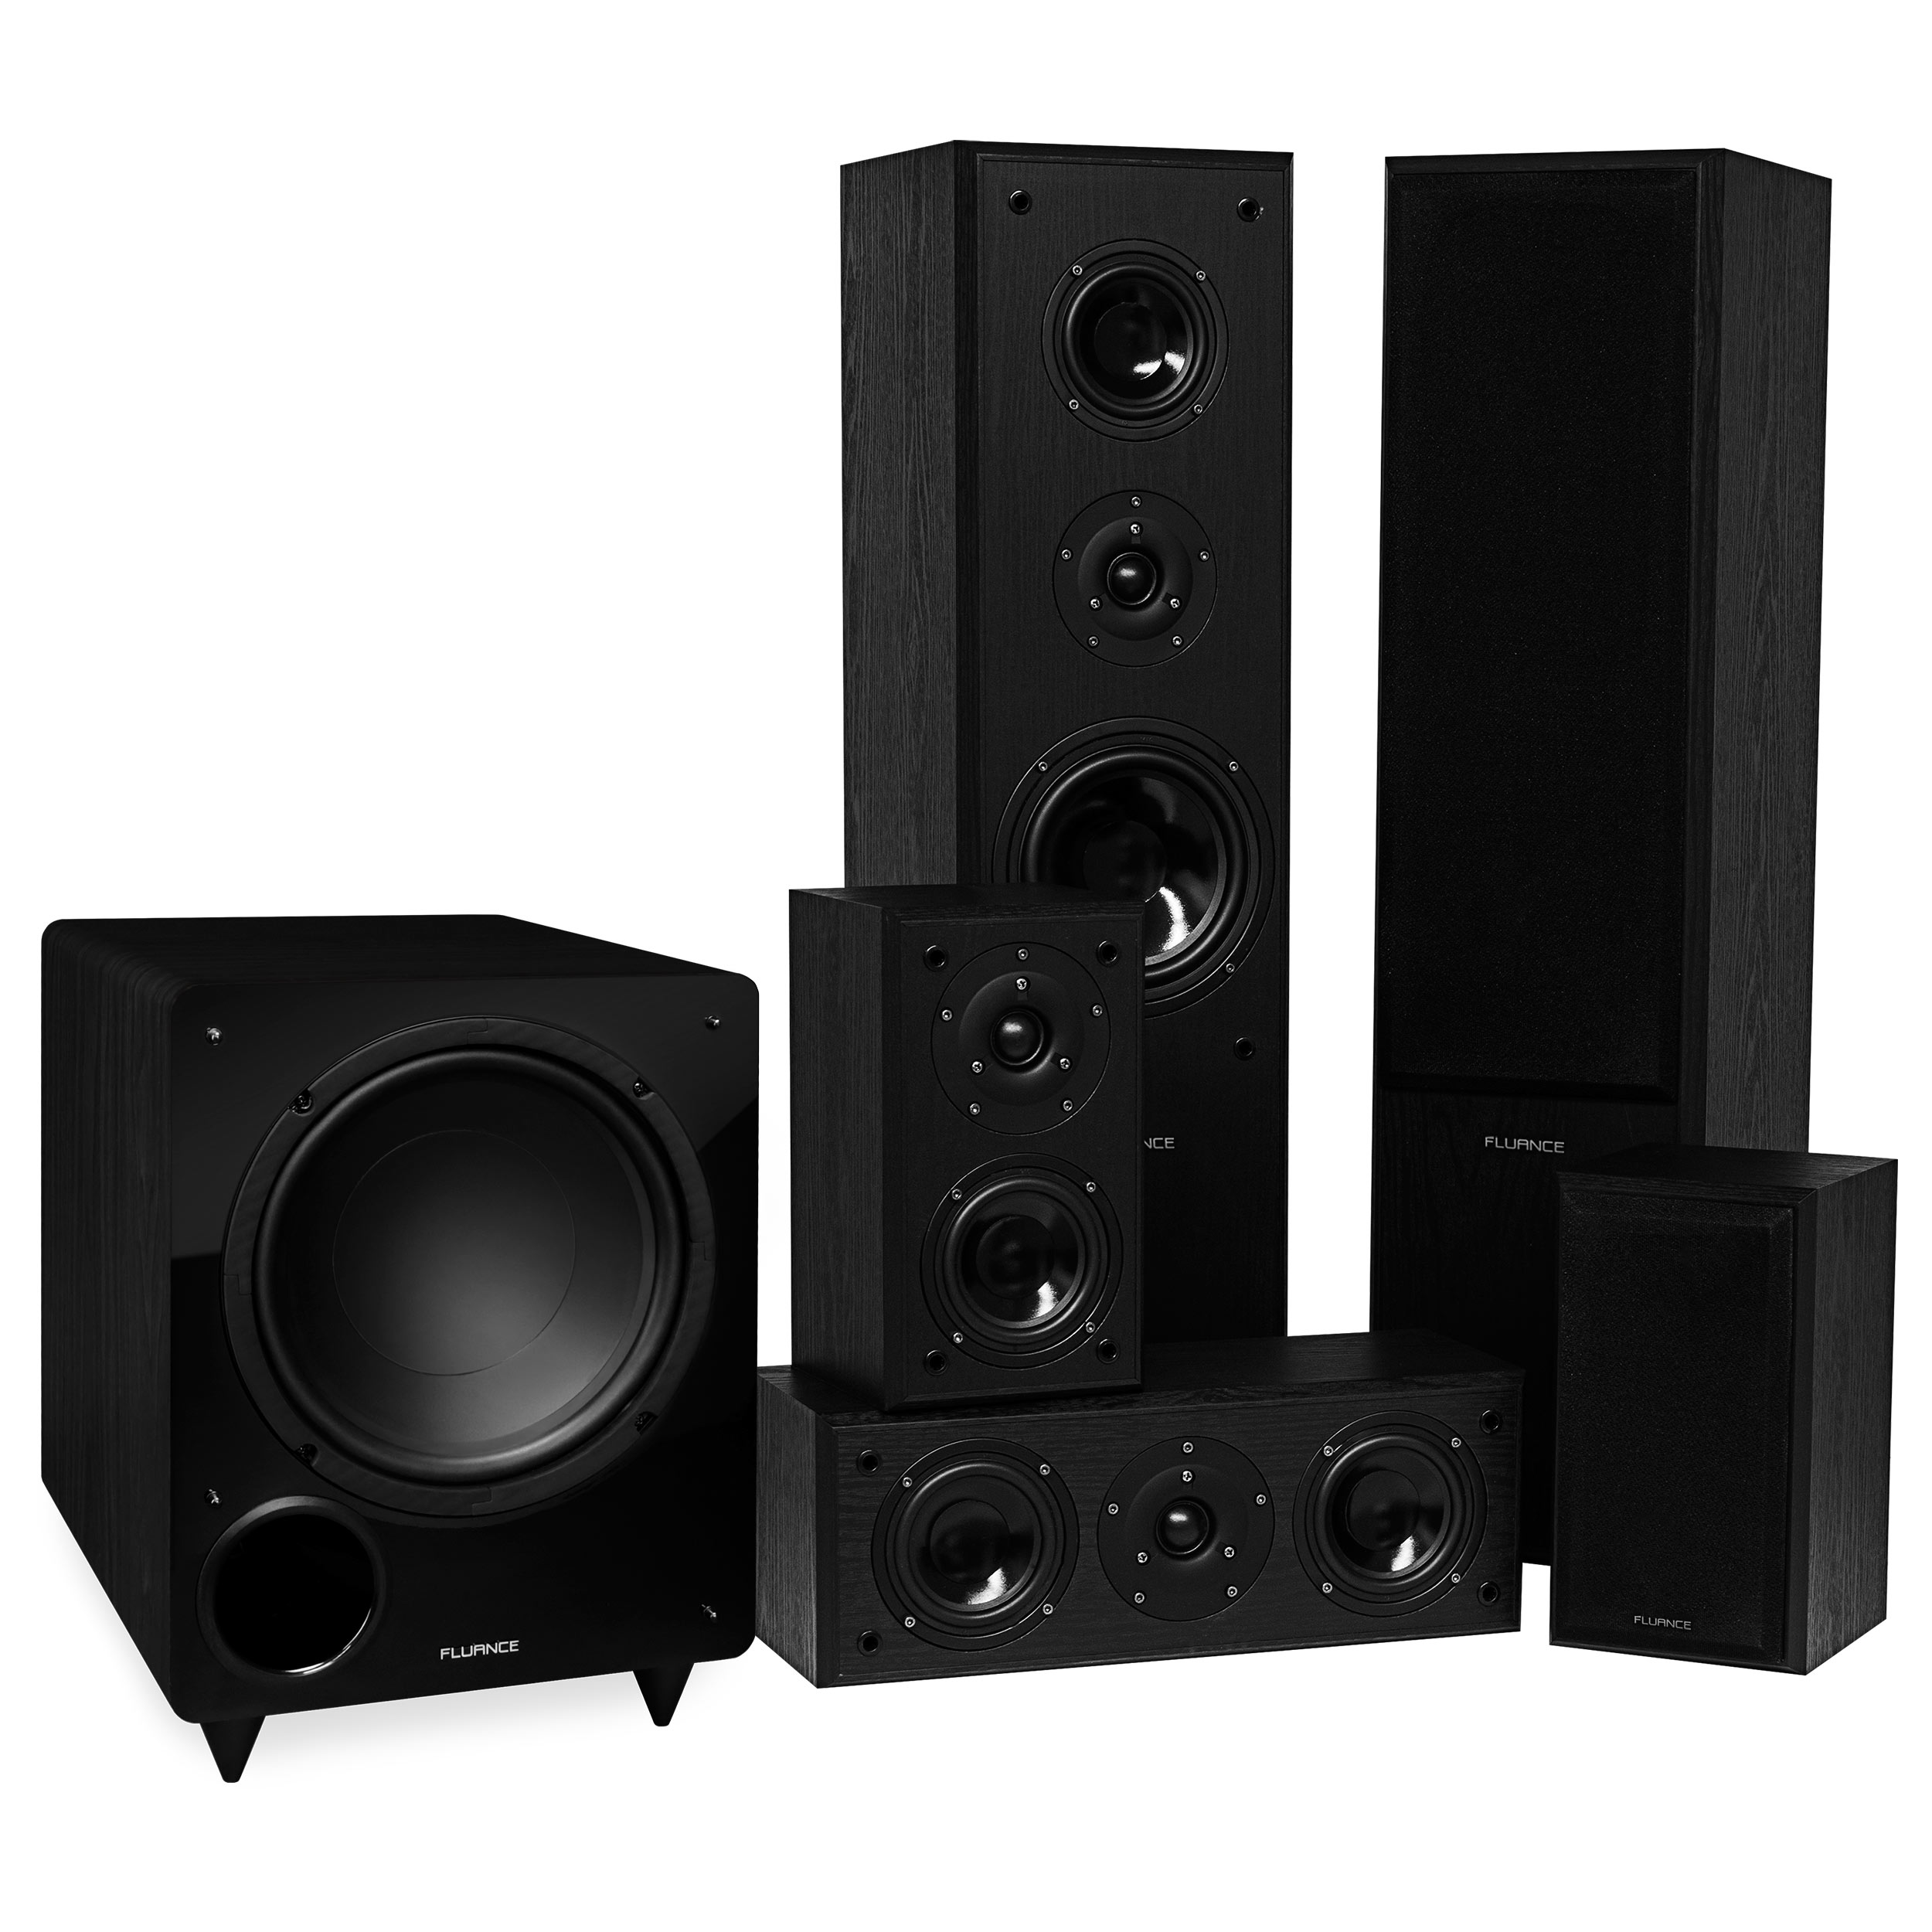 Fluance Classic Series Surround Sound Home Theater 5.1 Channel Speaker System including Three-way... by Fluance